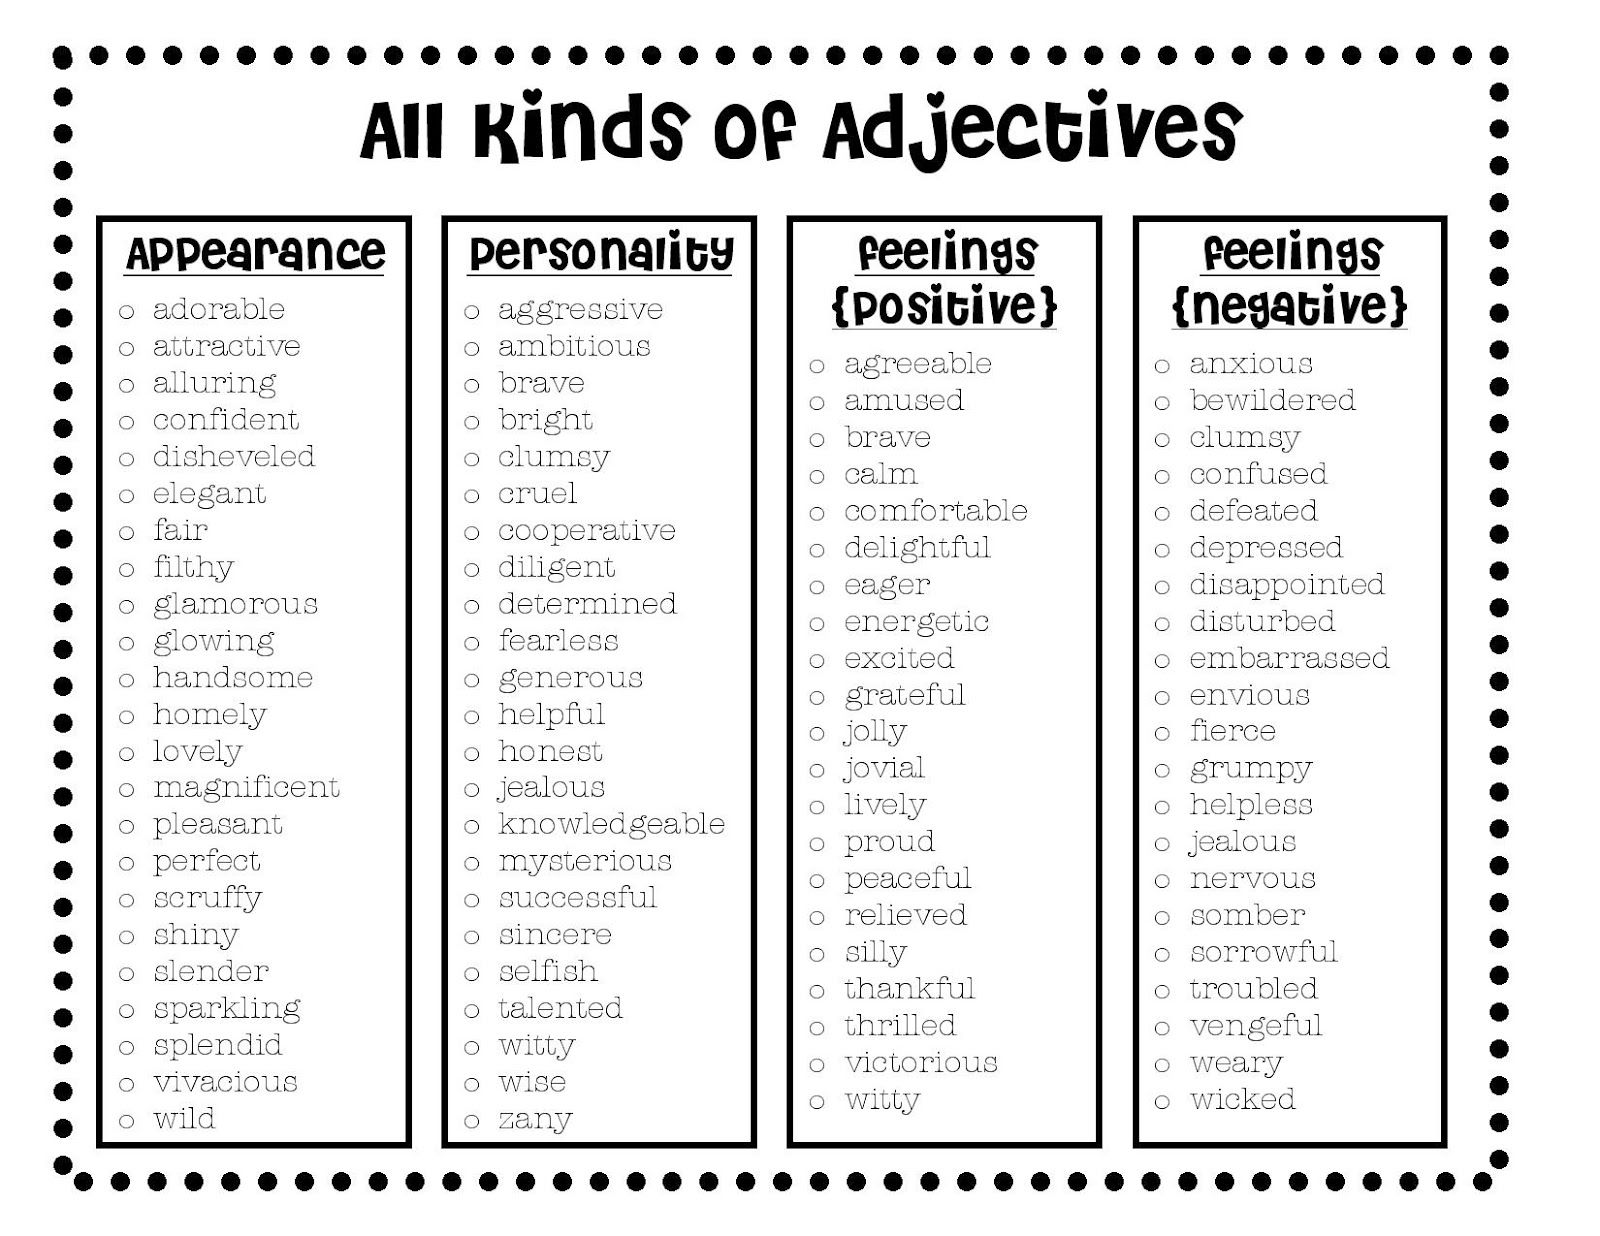 all kinds of adjectives from the esl experience tesol resources including appearance personality and their feelings great for a writing lesson for on revising for awesome or more descriptive adjectives